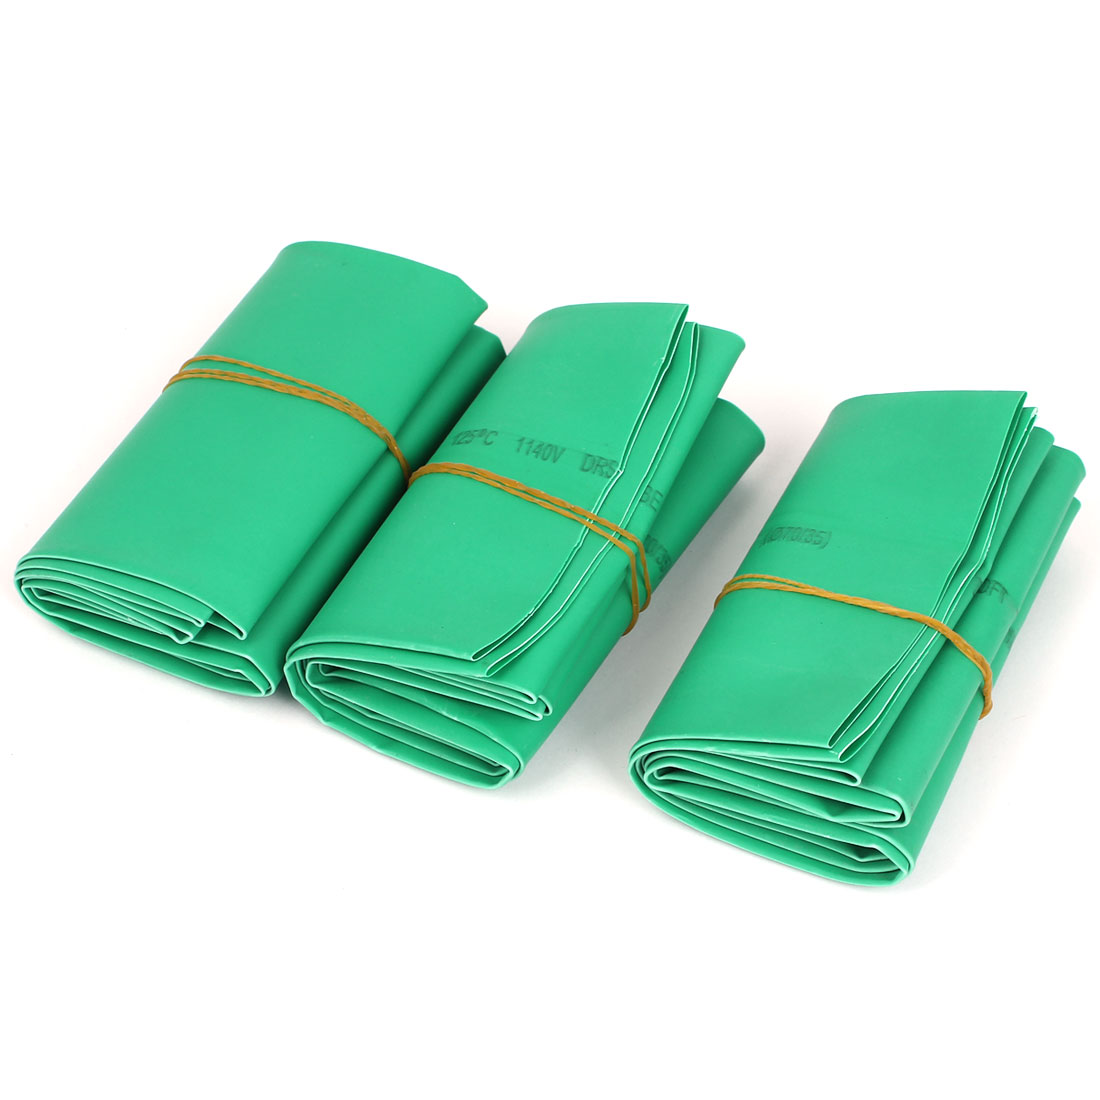 Green 70mm Diameter 2:1 Polyolefin Tube Sleeving Heat Shrink Tubing 1M 3pcs